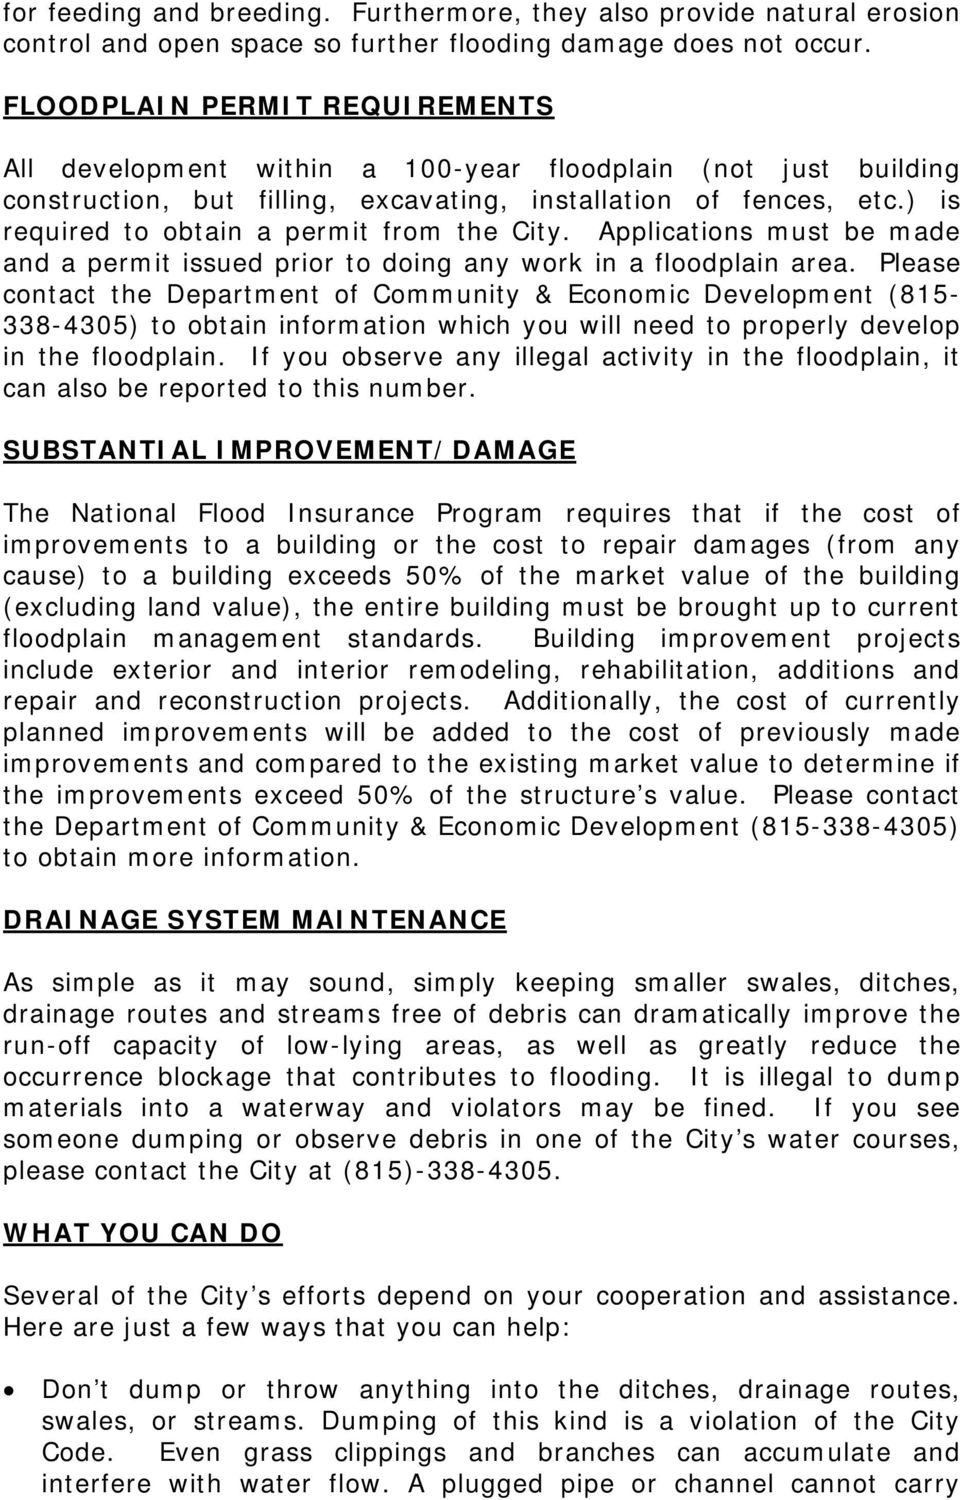 ) is required to obtain a permit from the City. Applications must be made and a permit issued prior to doing any work in a floodplain area.